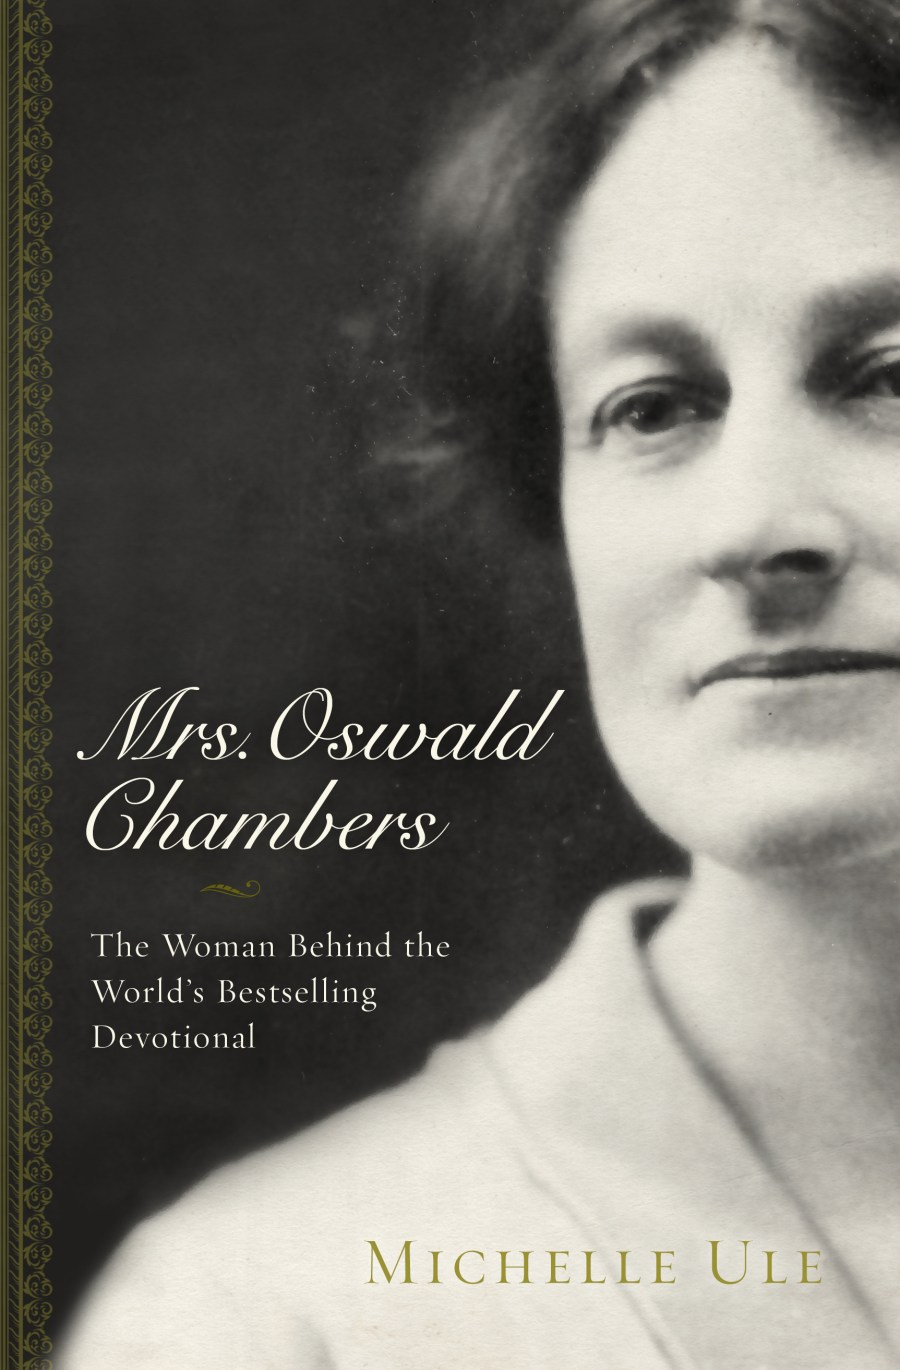 Happy Wedding Day, Oswald and Biddy! Biddy and Oswald Chambers: Tourists In America with Biddy and Oswald Chambers